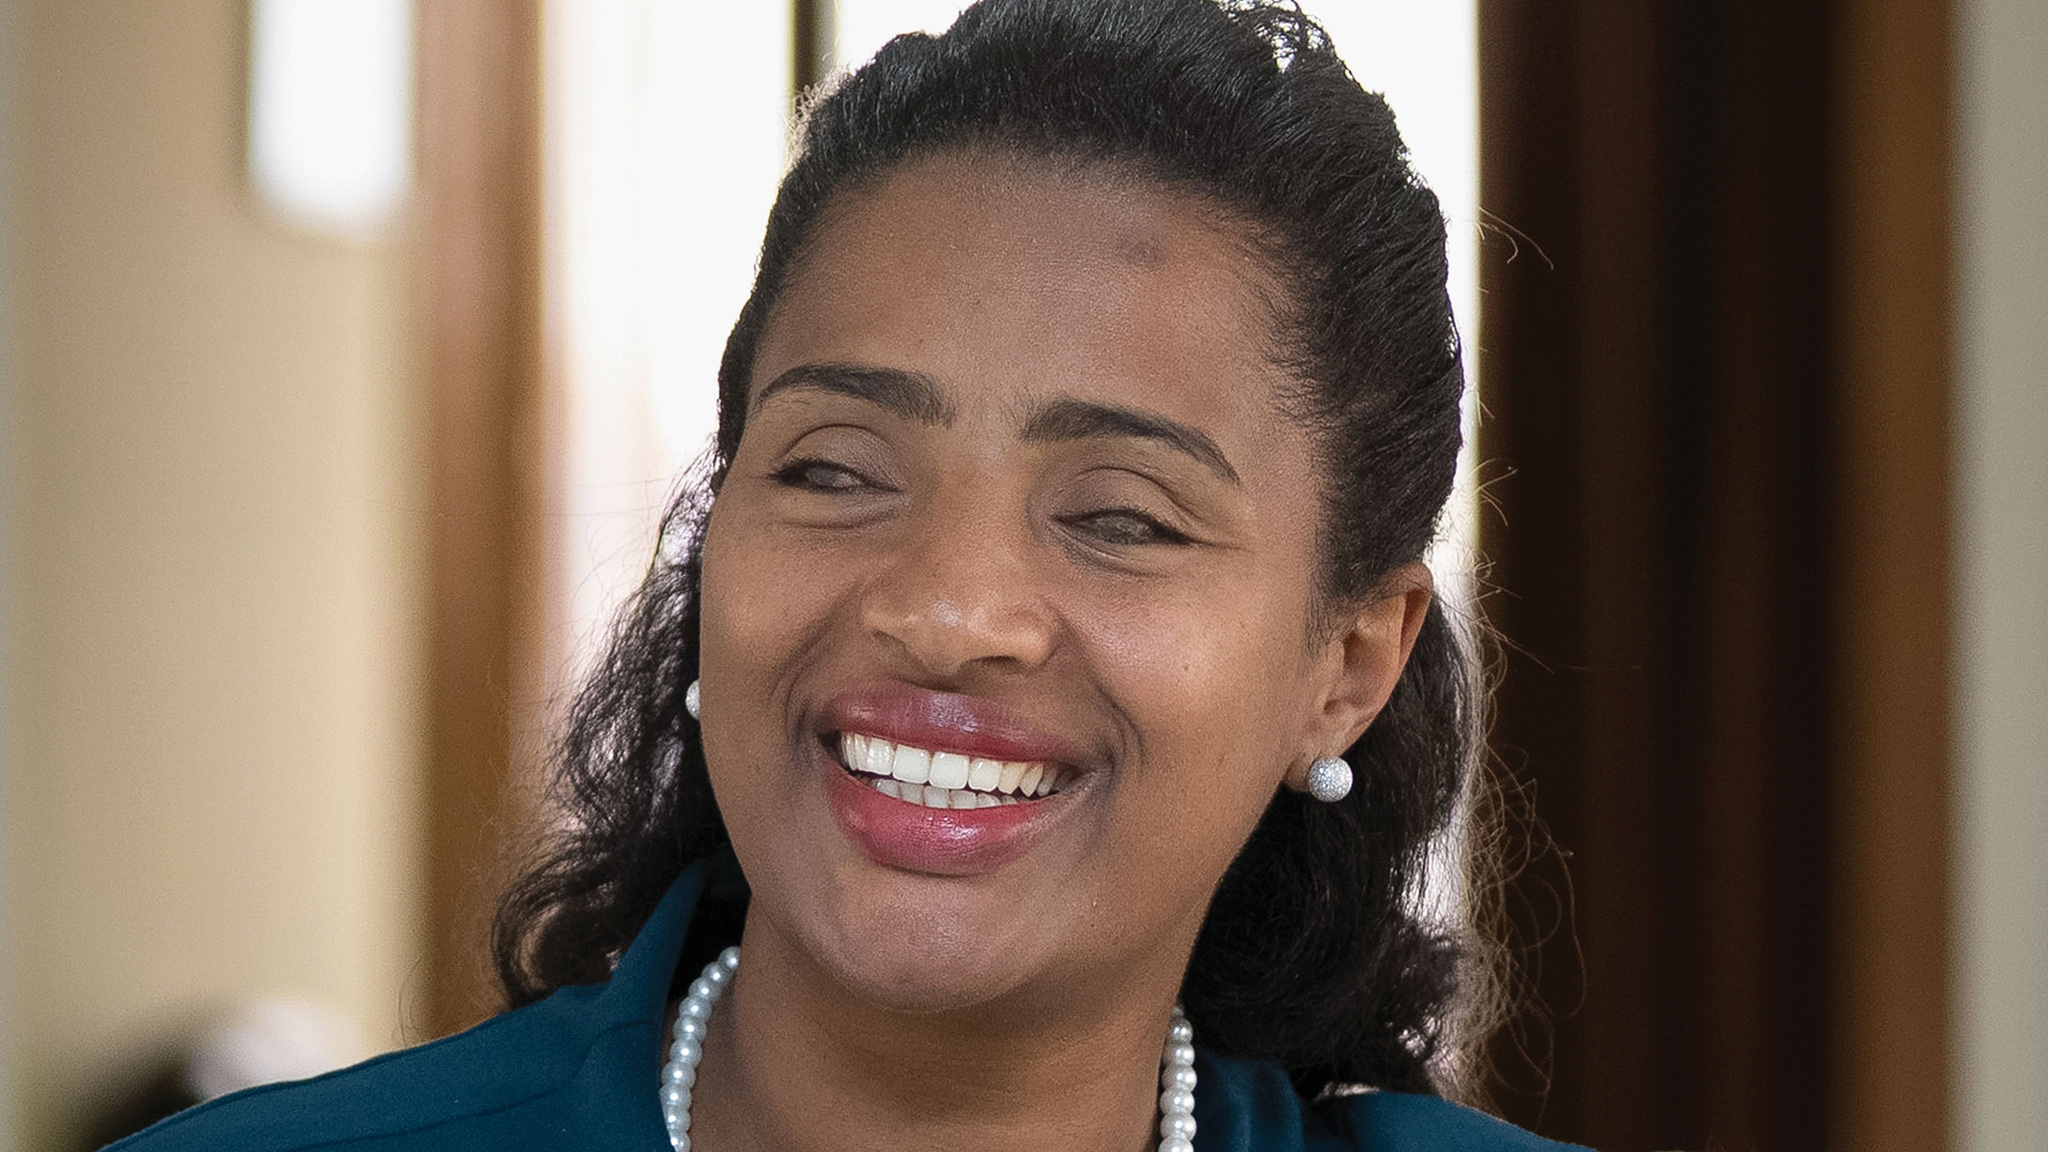 Yetnebersh Nigussie, a blind lawyer, reacts at her office in Addis Ababa, on October 11, 2017. Blind Ethiopian activist Yetnebersh Nigussie, who won Right Livelihood Award for her work promoting the rights of people with disabilities, fights for equal rights for the disabled, AFP reports October 25, 2017. / AFP PHOTO / Zacharias ABUBEKER        (Photo credit should read ZACHARIAS ABUBEKER/AFP/Getty Images)